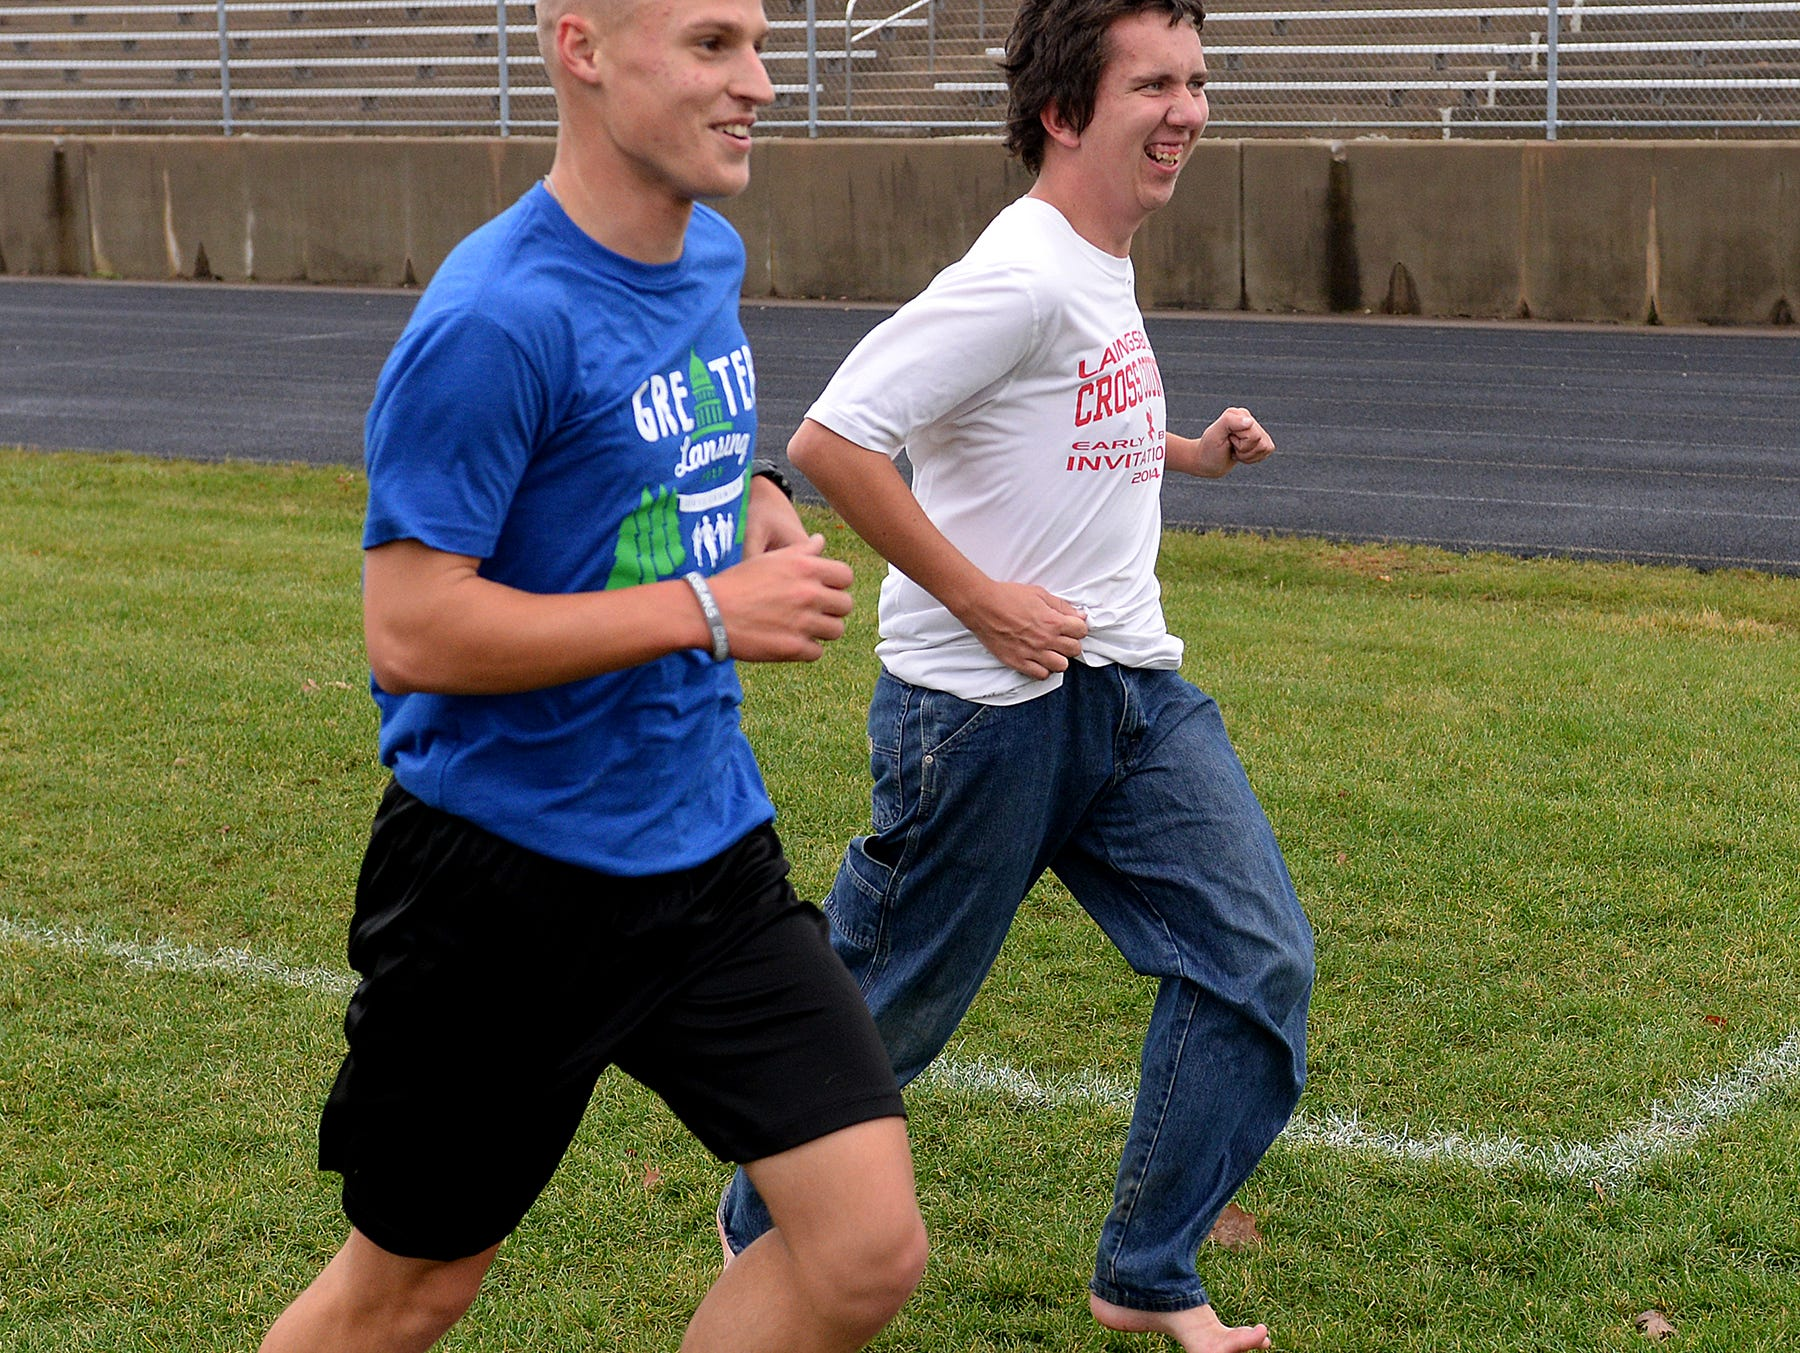 """Sophomore Ryan Kingsbury, in blue, runs with Ray Latchaw to encourage him to finish out his last run during a Laingsburg cross country team practice Wednesday, October 28, 2015 at Laingsburg High School. Latchaw, a junior, is autistic, but runs, he says, to stay healthy and because he enjoys the """"me time"""" he gets."""